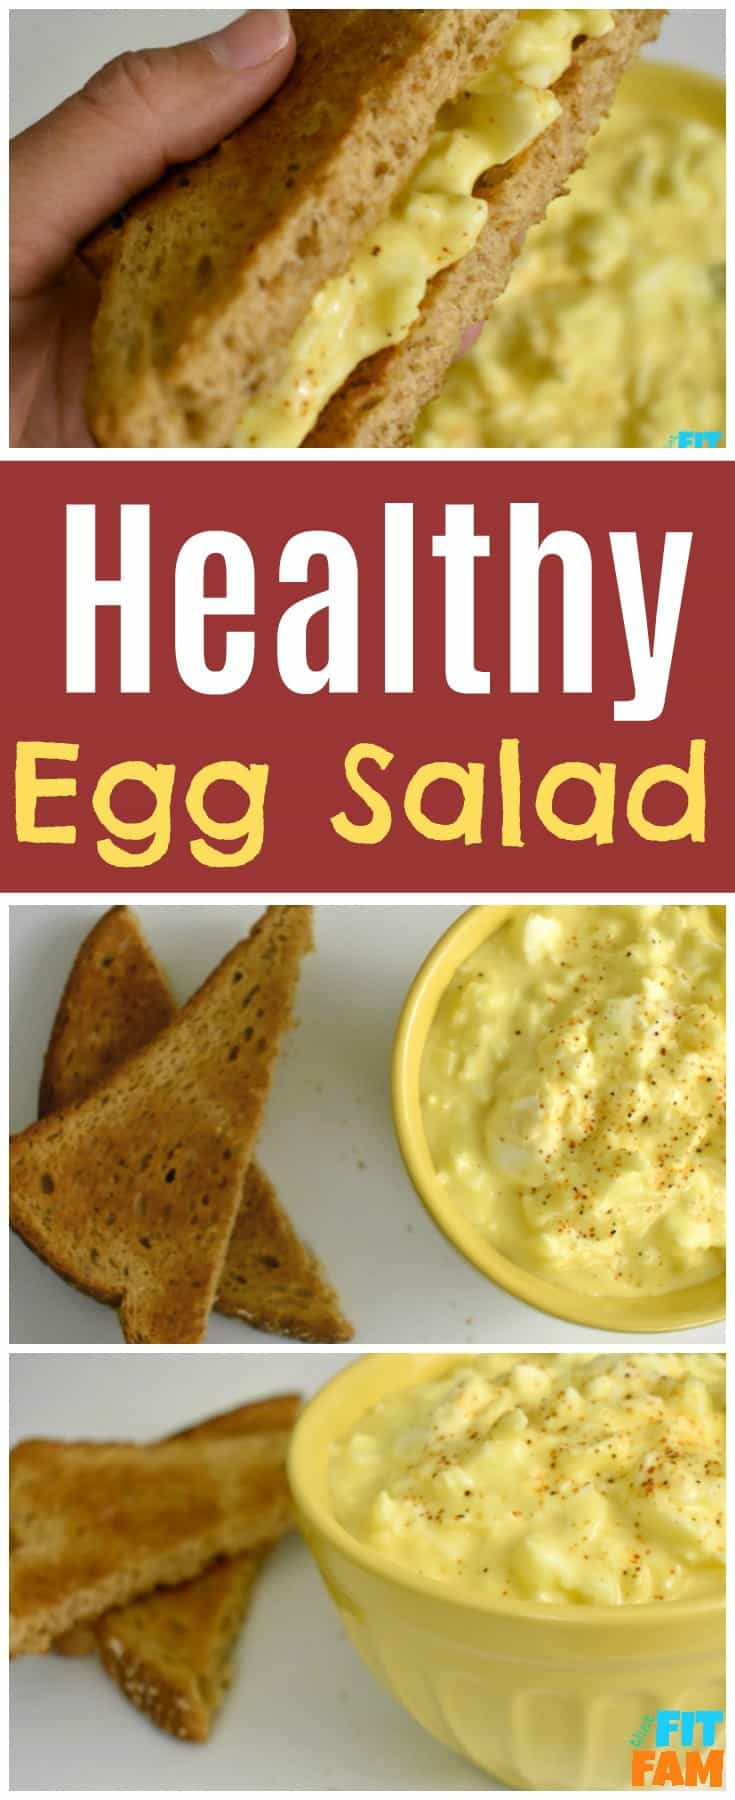 Healthy Egg Salad is the perfect healthy lunch, so easy to make and you can't even tell there's no mayo! Diet and IIFYM friendly recipe